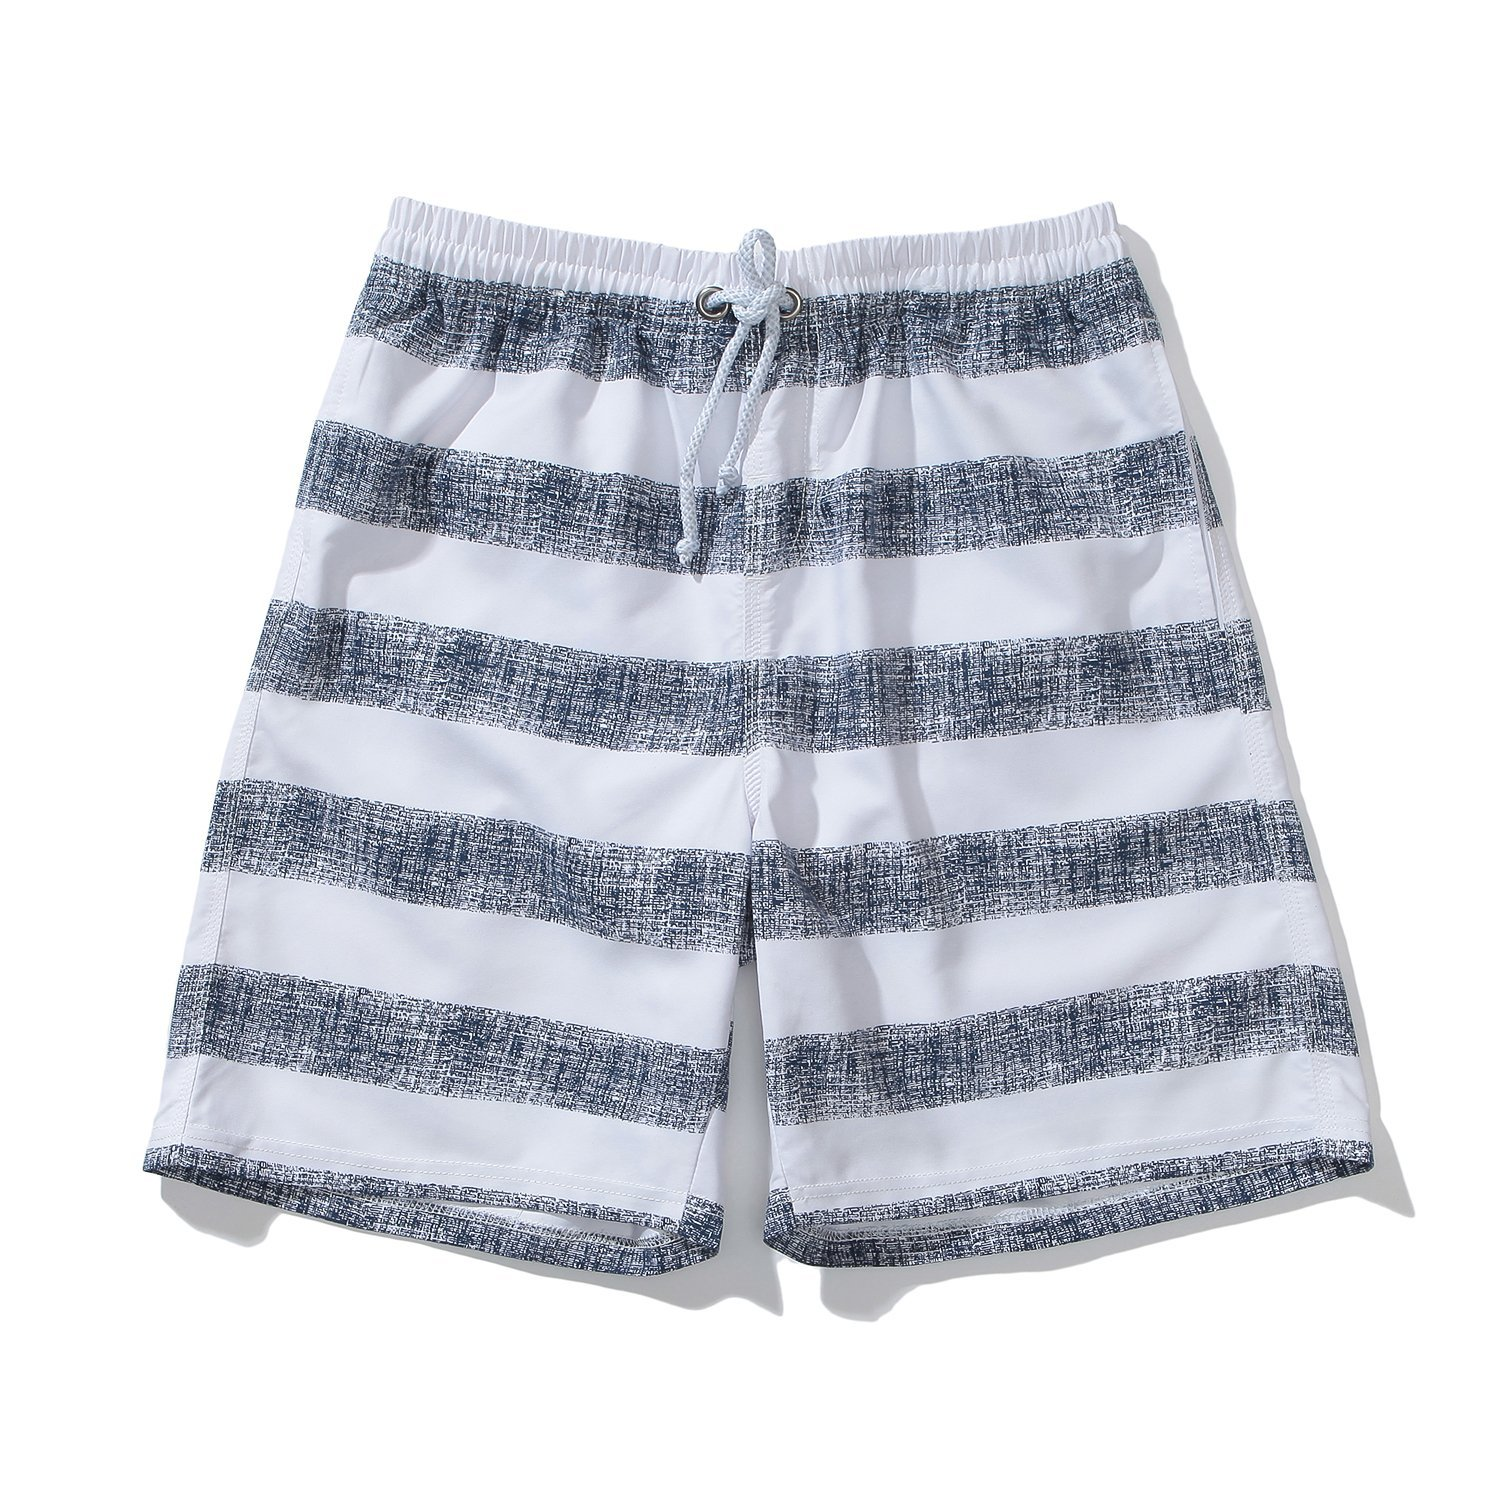 402a68ae07181 Get Quotations · swim trunks for men swim trunks short black and white swimwear  big and tall